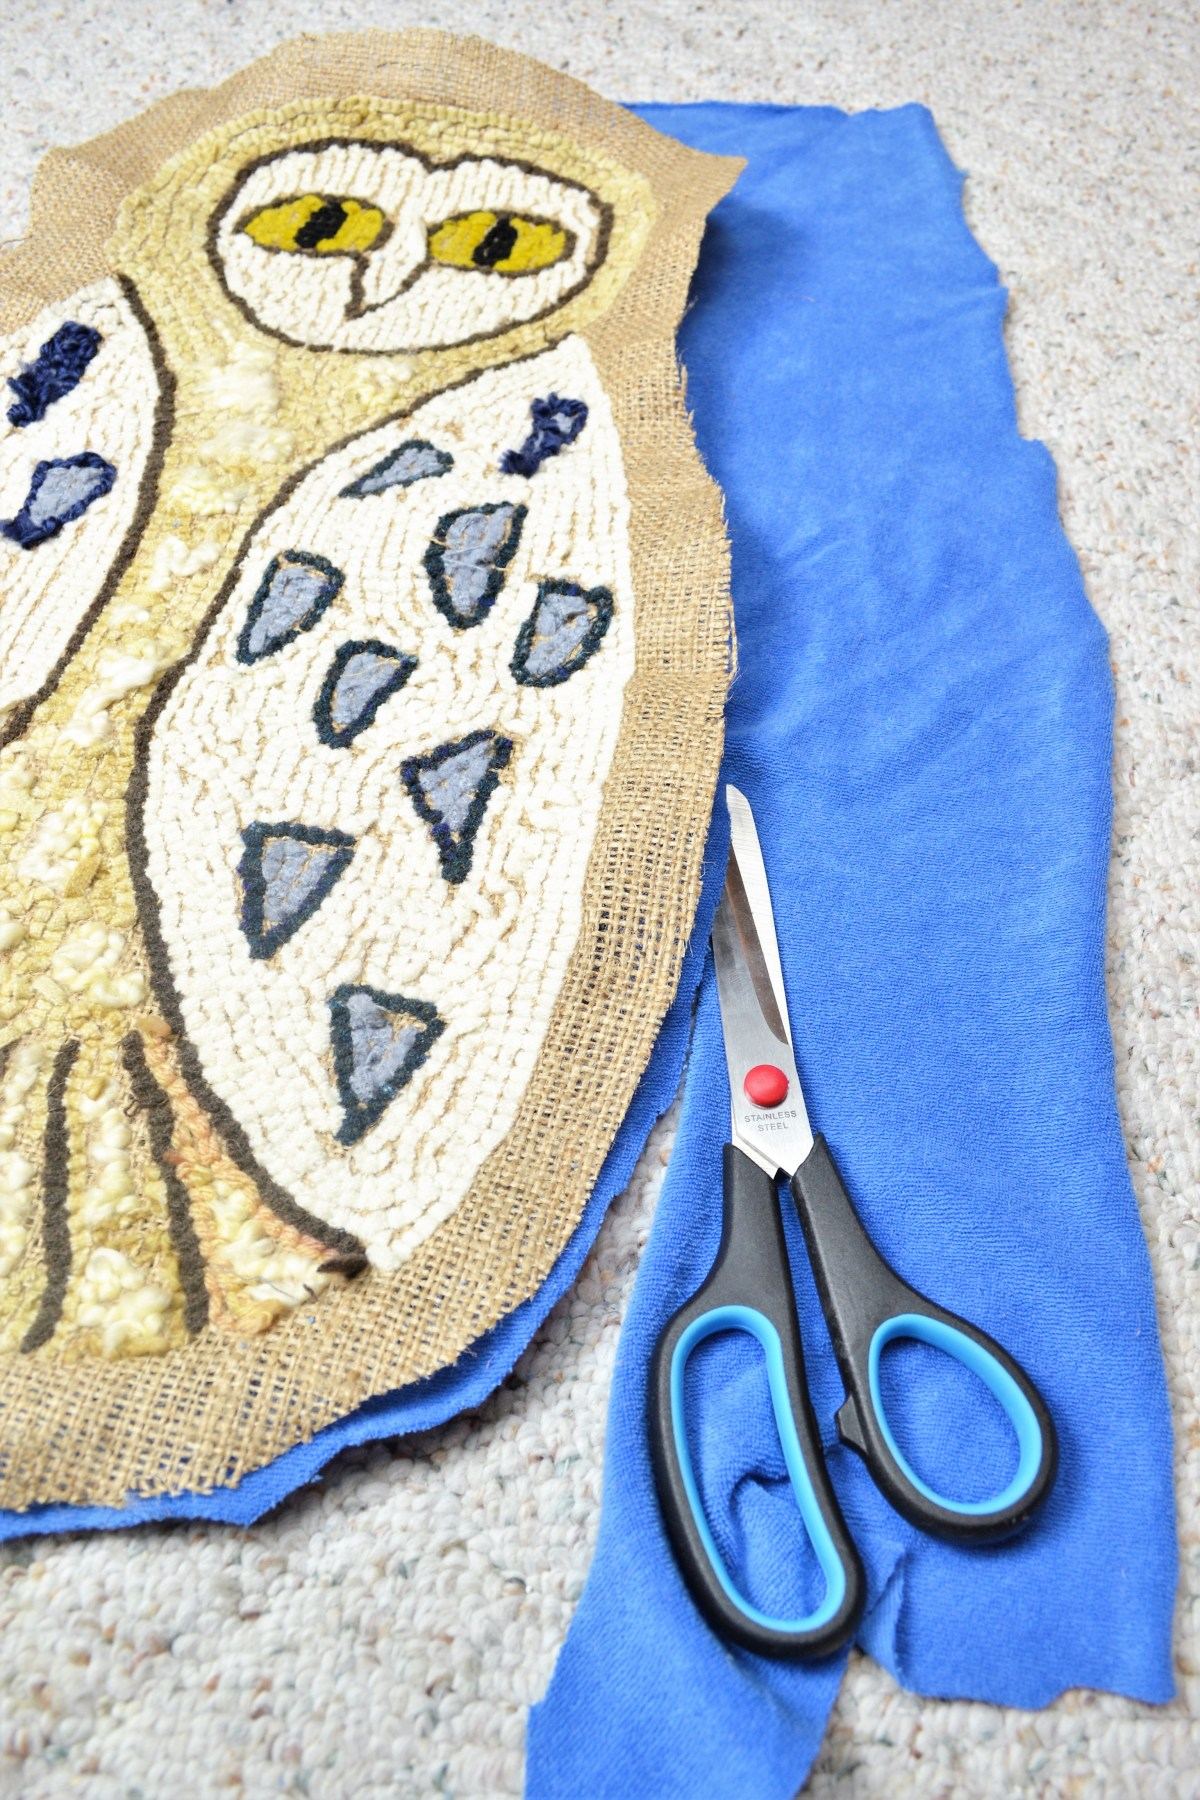 Rug Hooking: How to Make Your Rug Hooking Patterns into a Pillow! - cut backing fabric